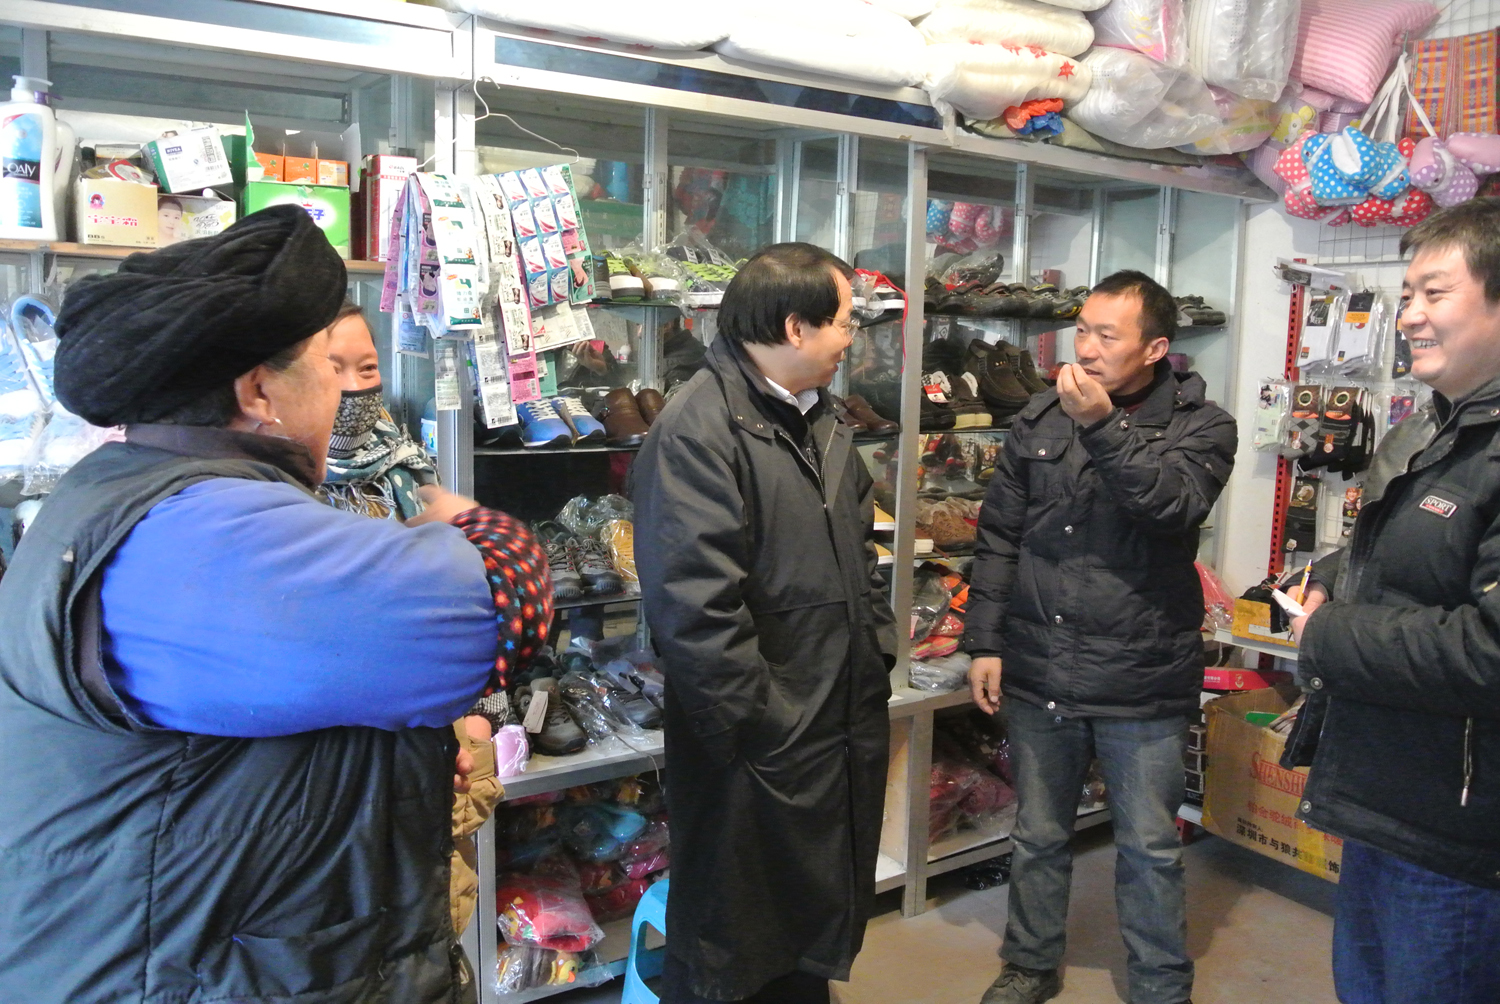 Two of the paper co-authors, Jack Liu (left) and Jindong Zhang are seen here talking to a farmer about the impact of livestock on panda habitat at the Wolong Nature Reserve. Image courtesy of Michigan State University.